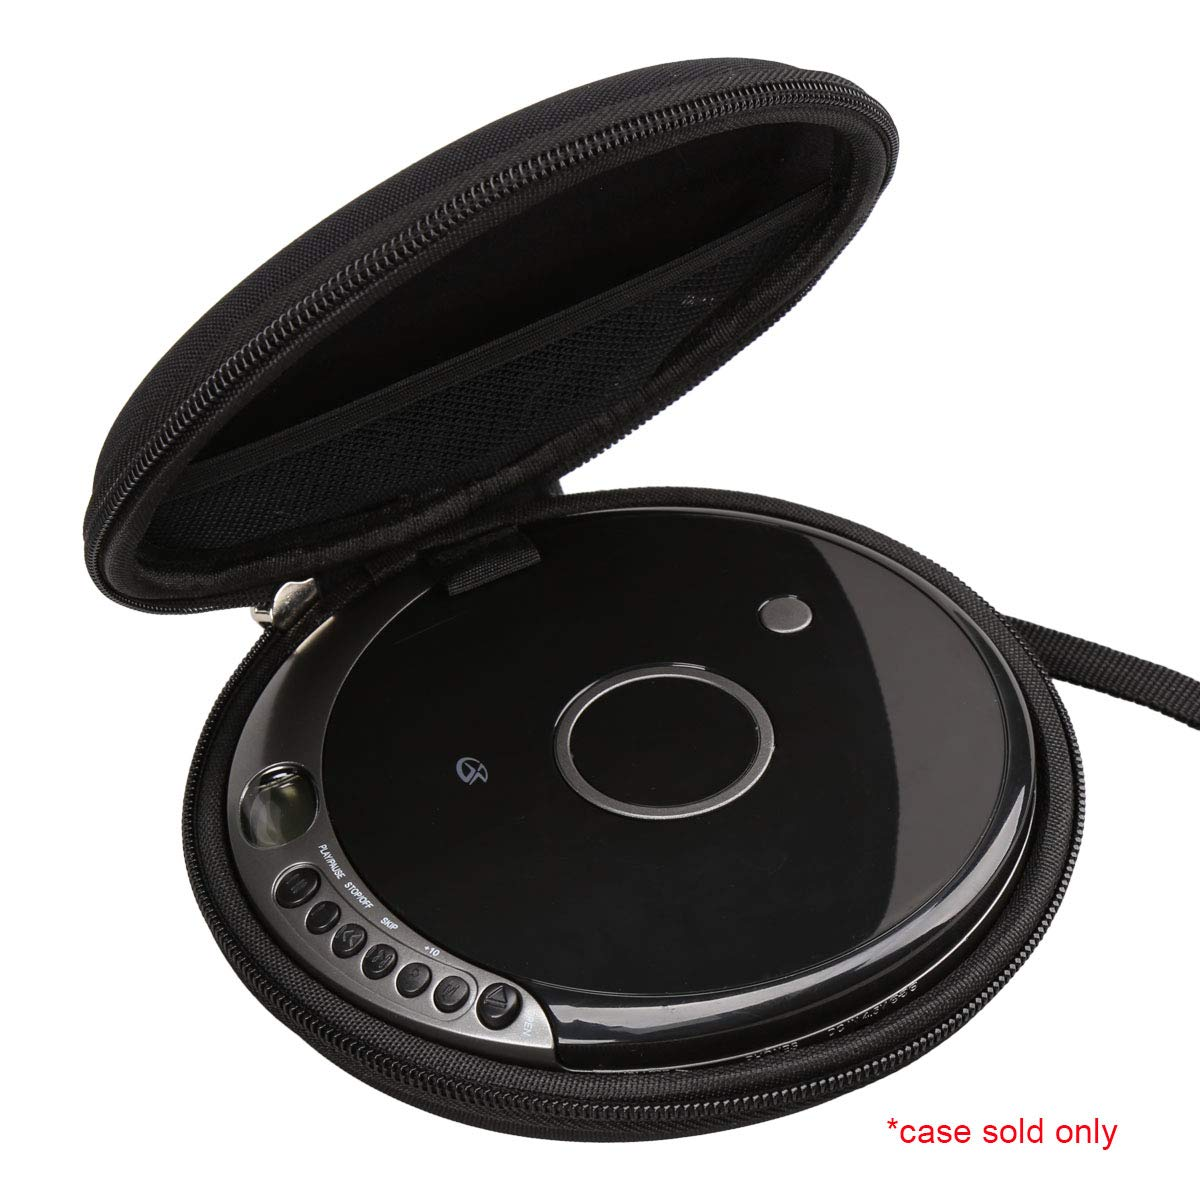 Aproca Hard Case Compatible with GPX PC807B Personal Portable MP3/CD Player